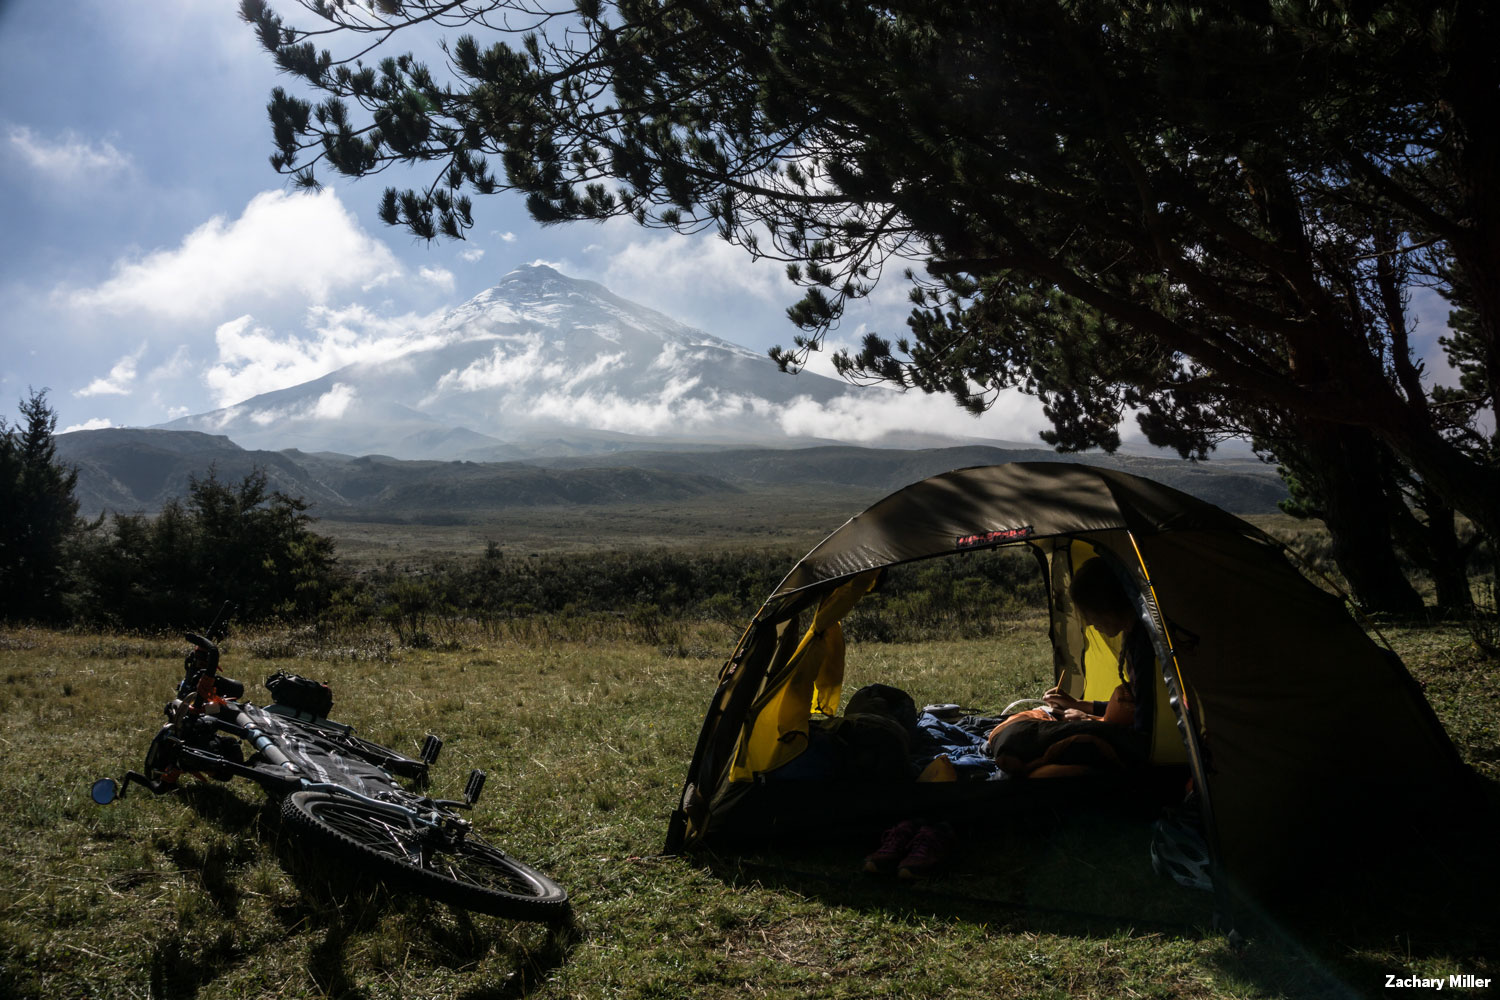 Hello Hilleberg My wife and I picked up one of your Allak tents last year to serve as our go-to international bicycle touring and winter adventuring tent ... & Testimonials from Hilleberg campers